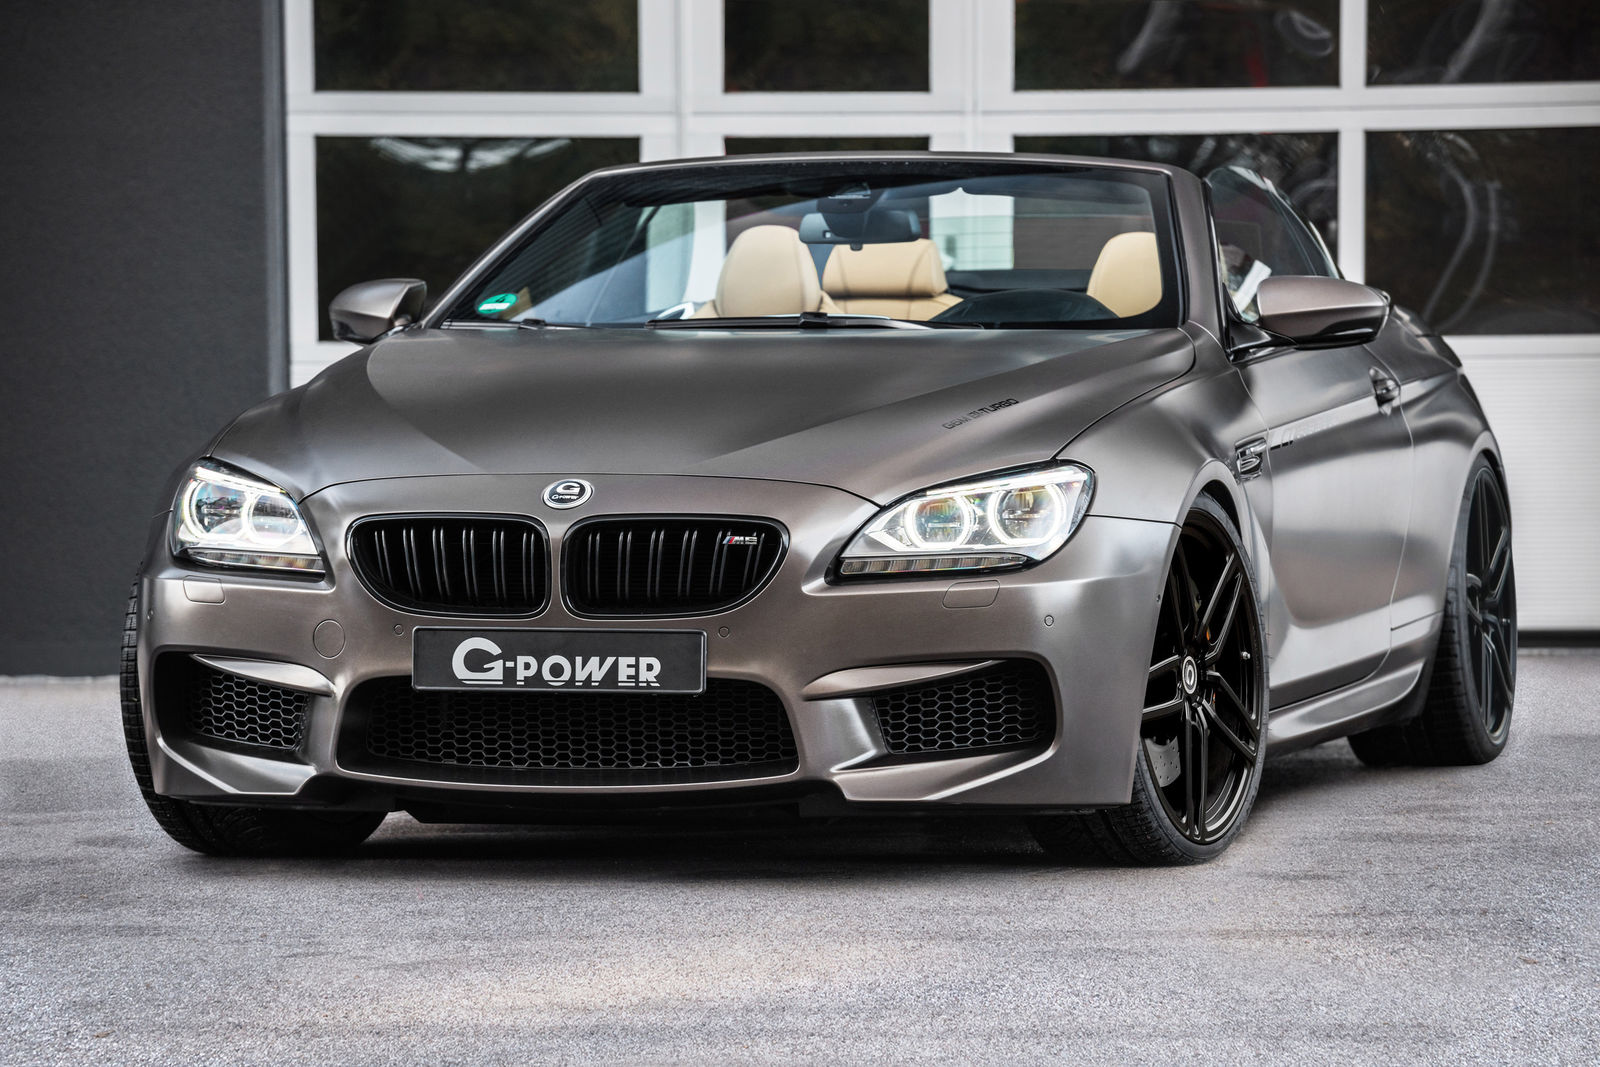 bmw-m6-convertible-g-power-tuning-1